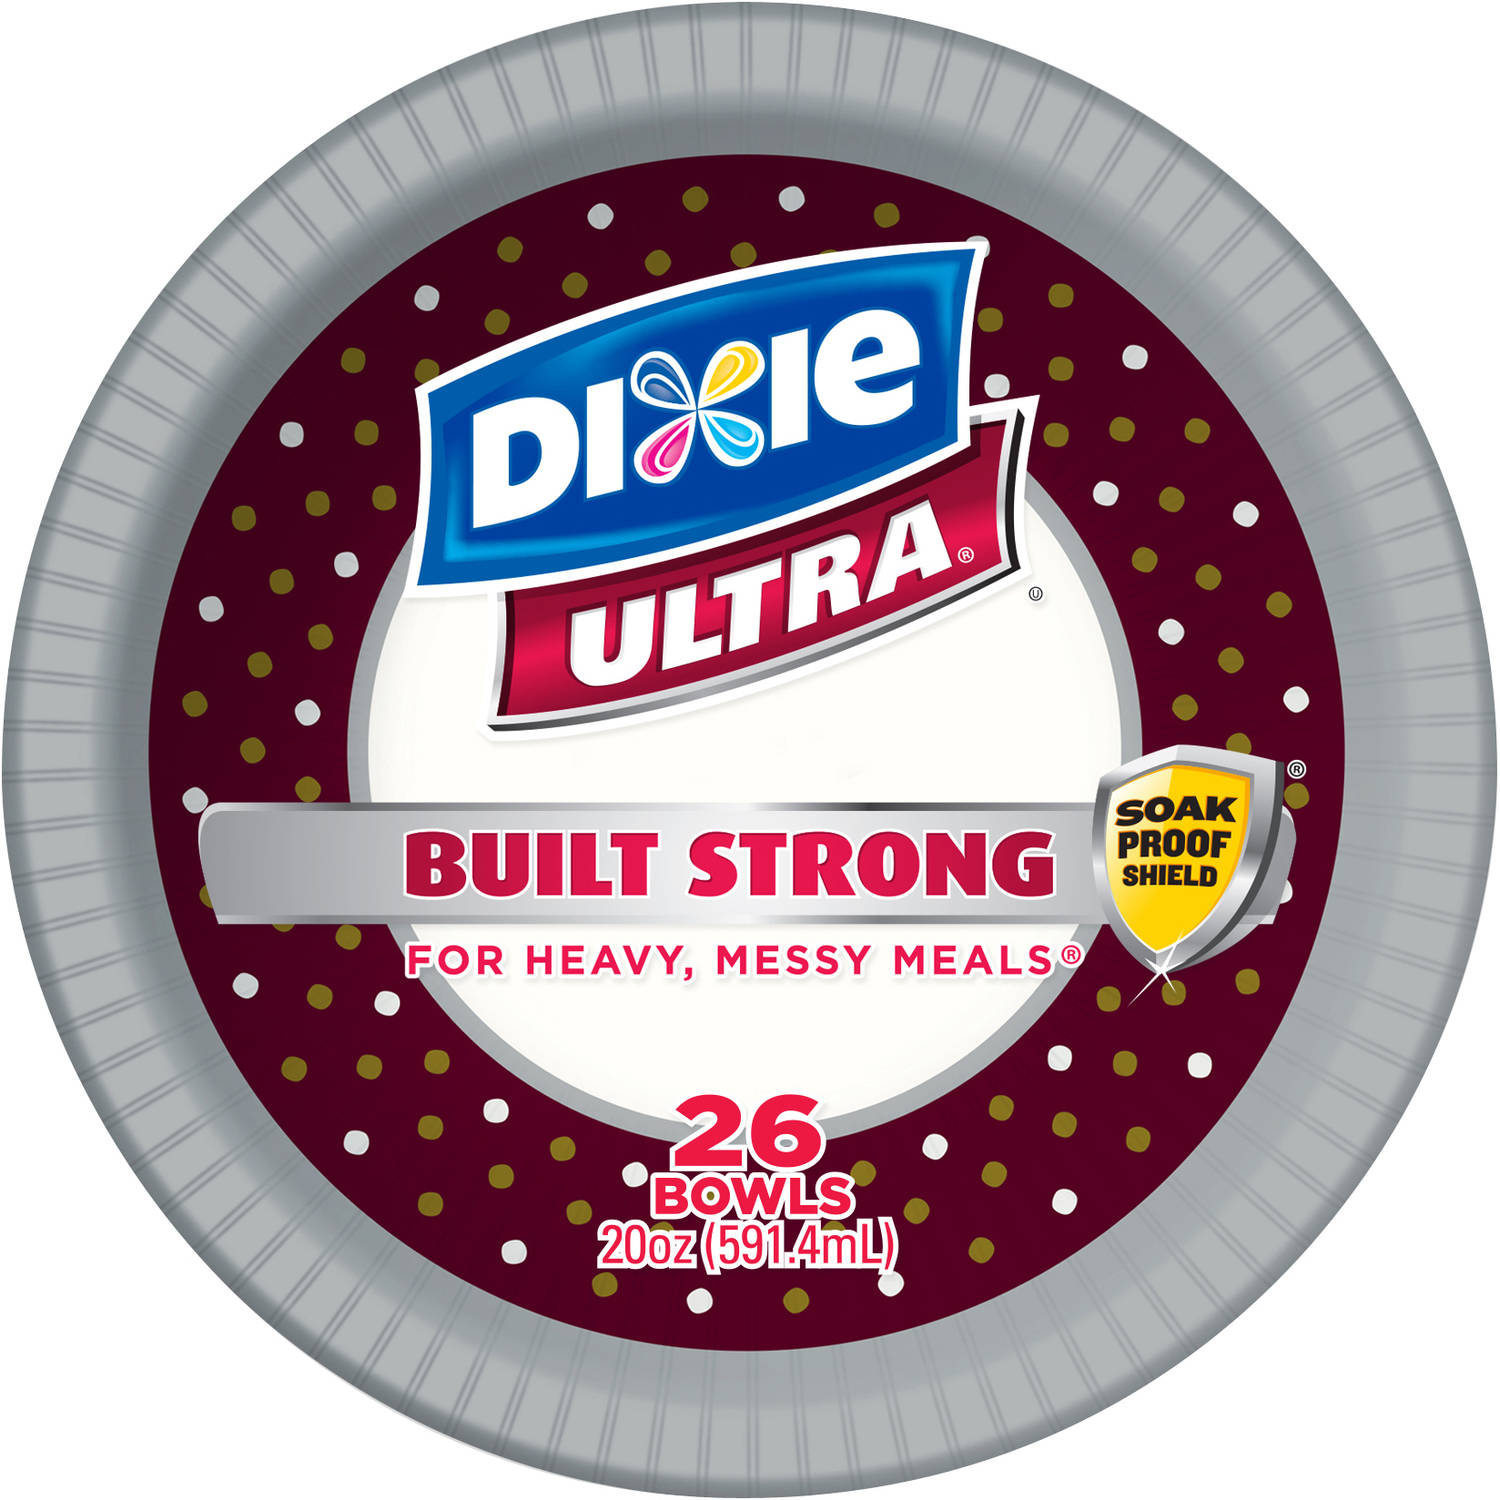 Dixie Ultra Paper Bowl, 20 oz, 26 count